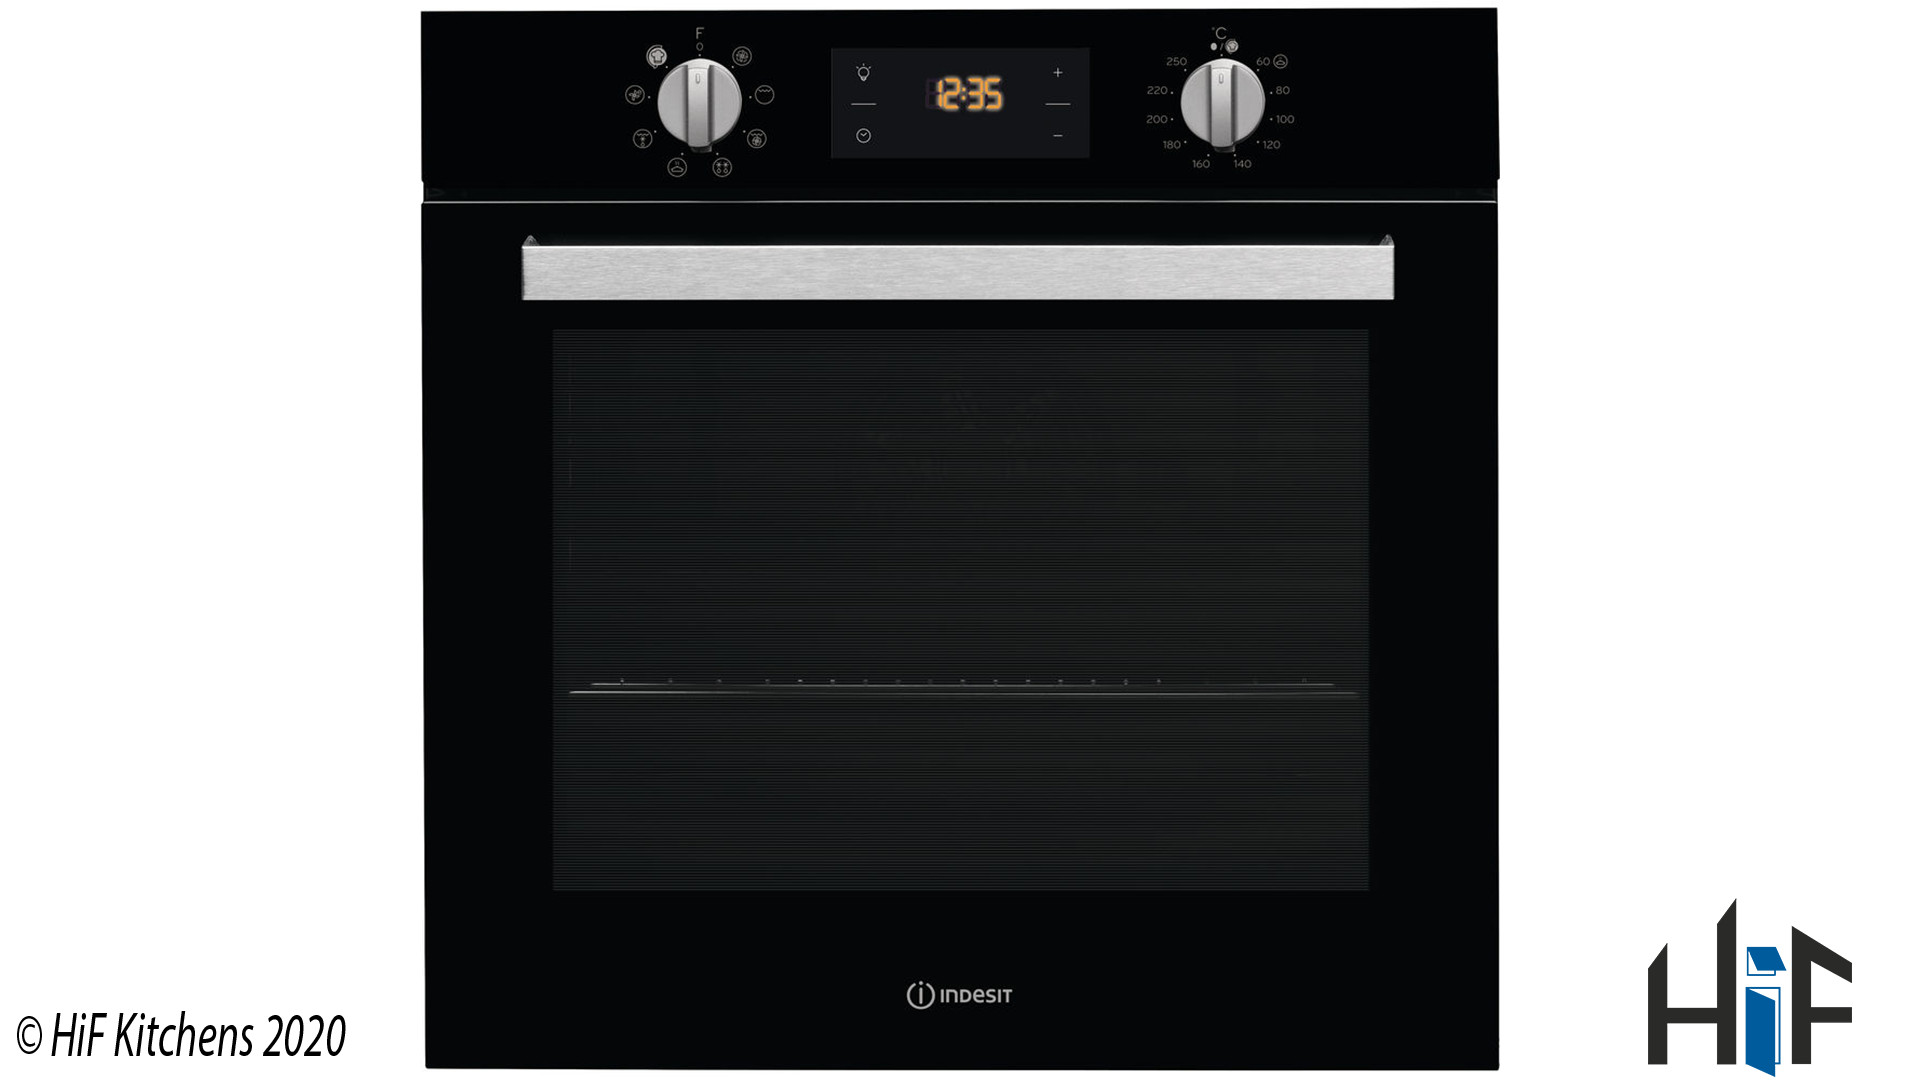 Indesit Aria IFW 6340 BL UK Single Oven supplied by HiF Kitchens